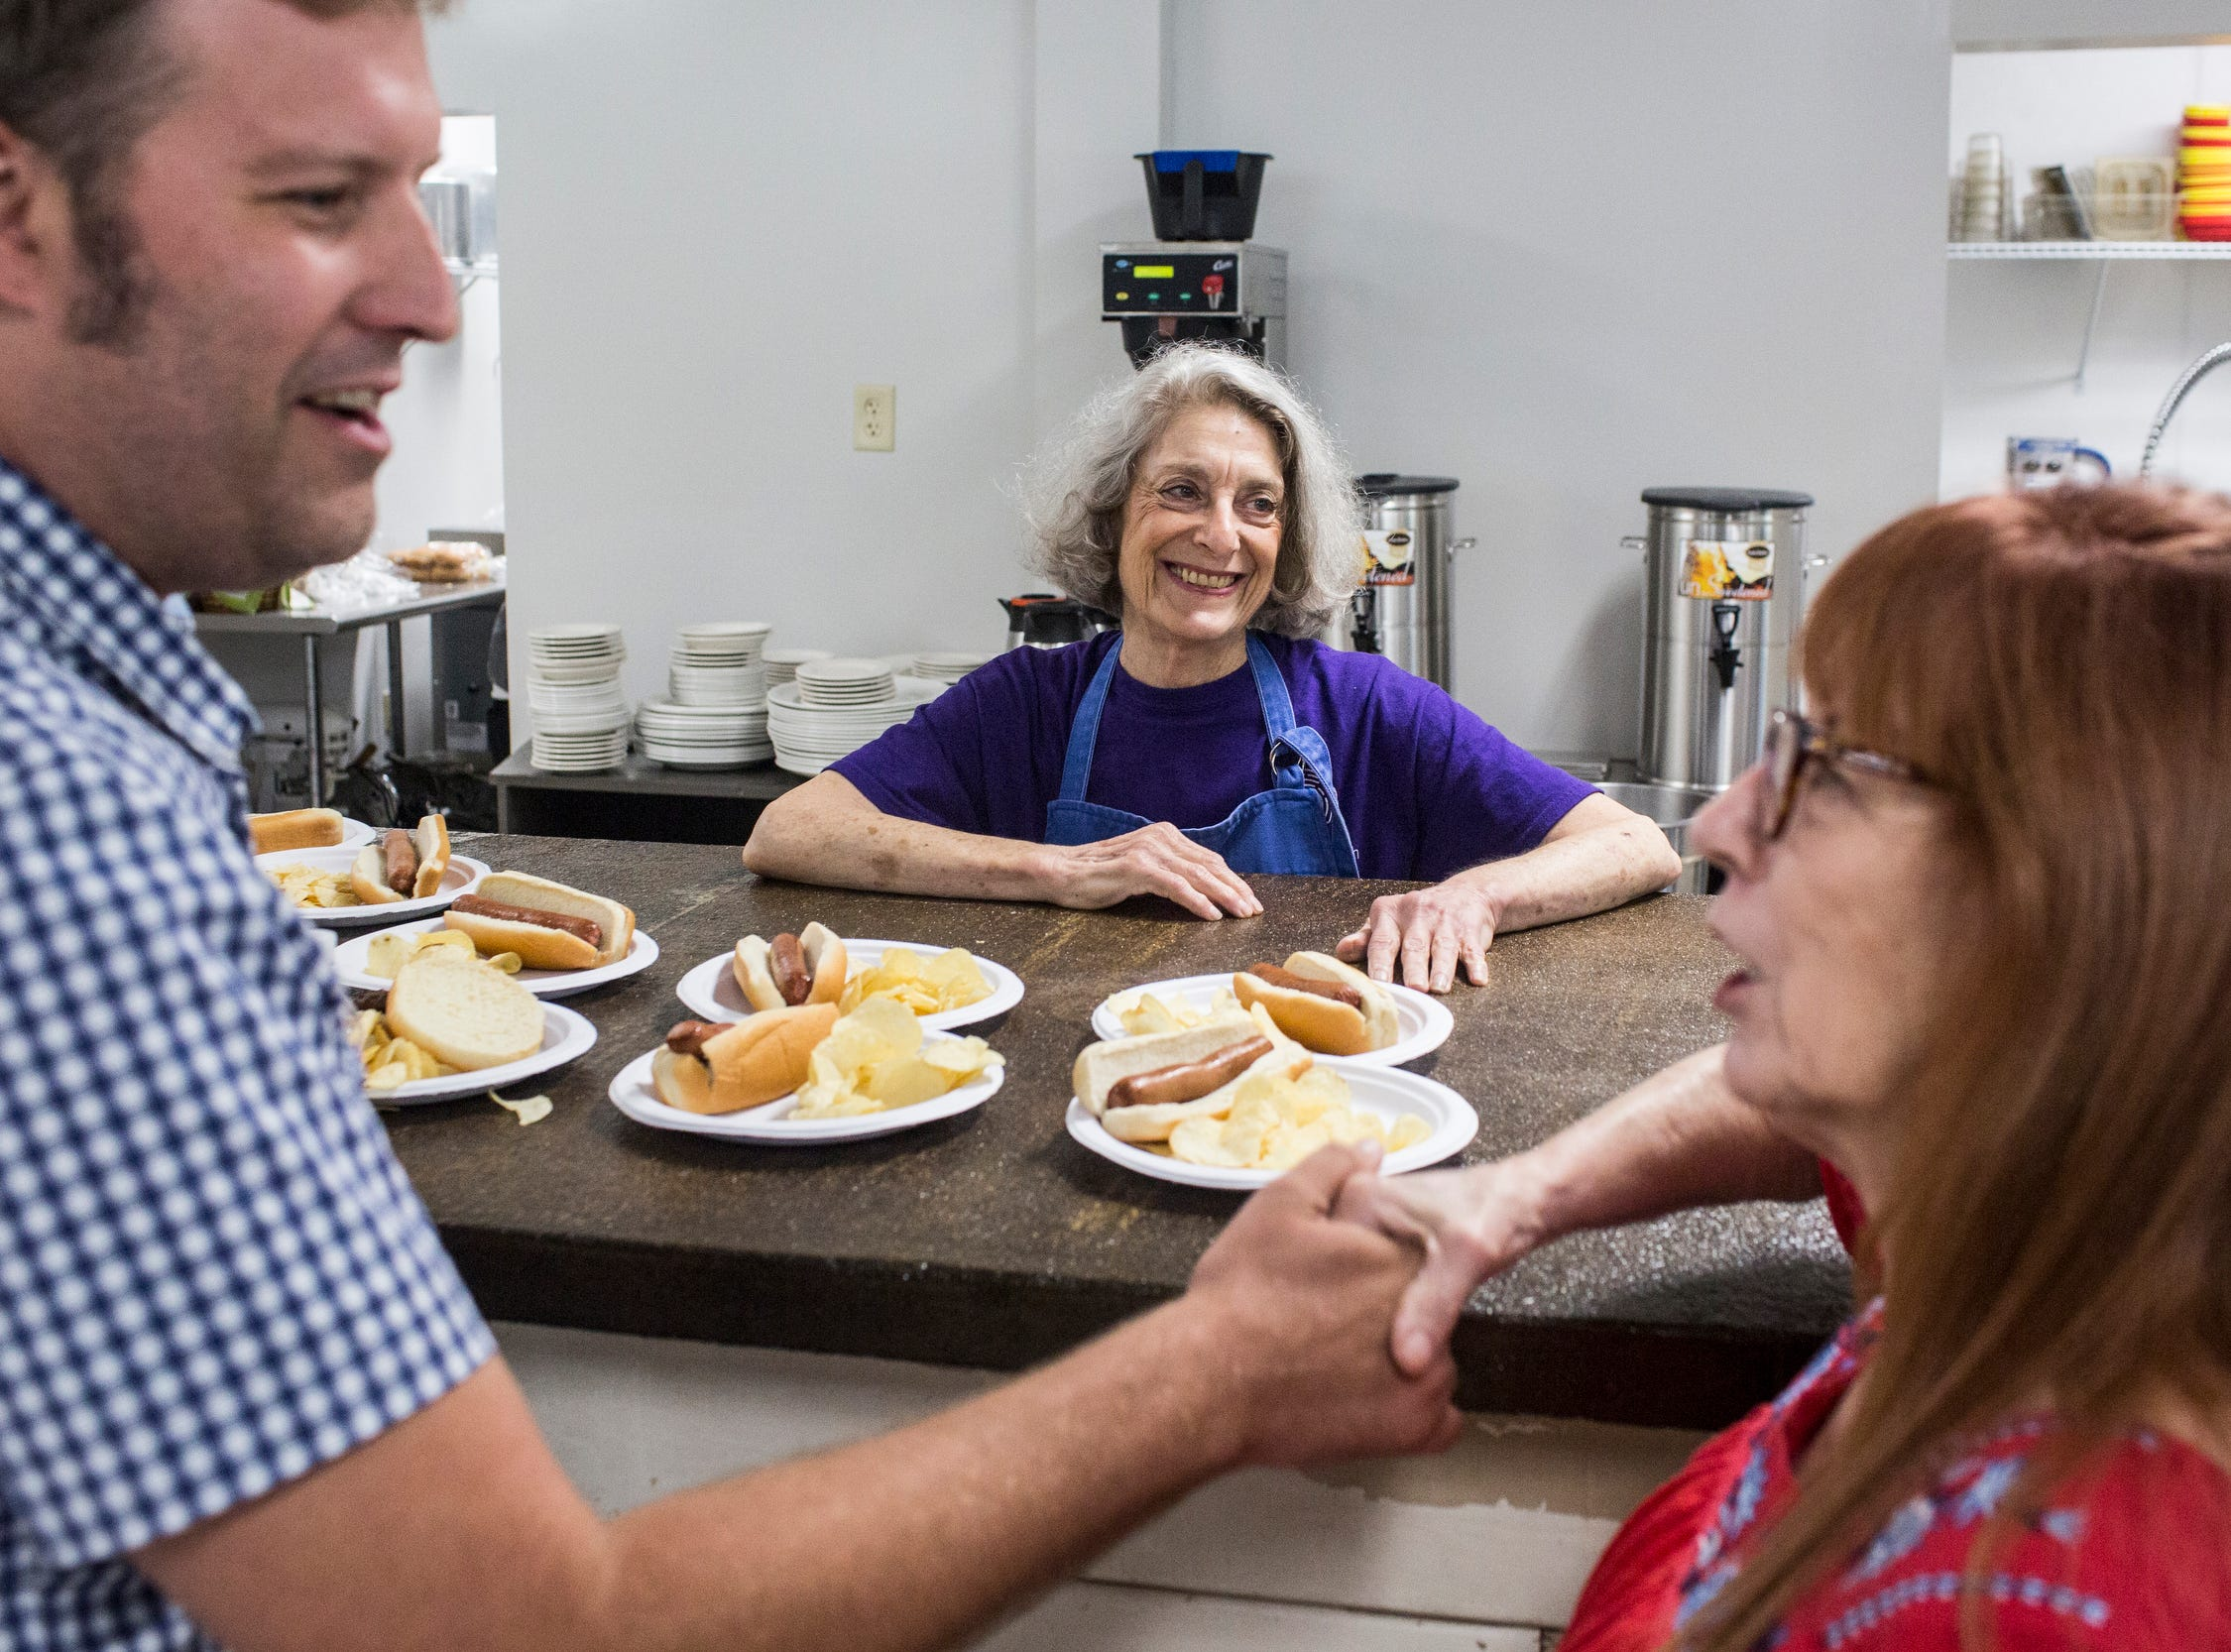 August 25 2018 - Eddie Thomas, center, smiles while serving food during a get together at the re-opened Caritas Village.